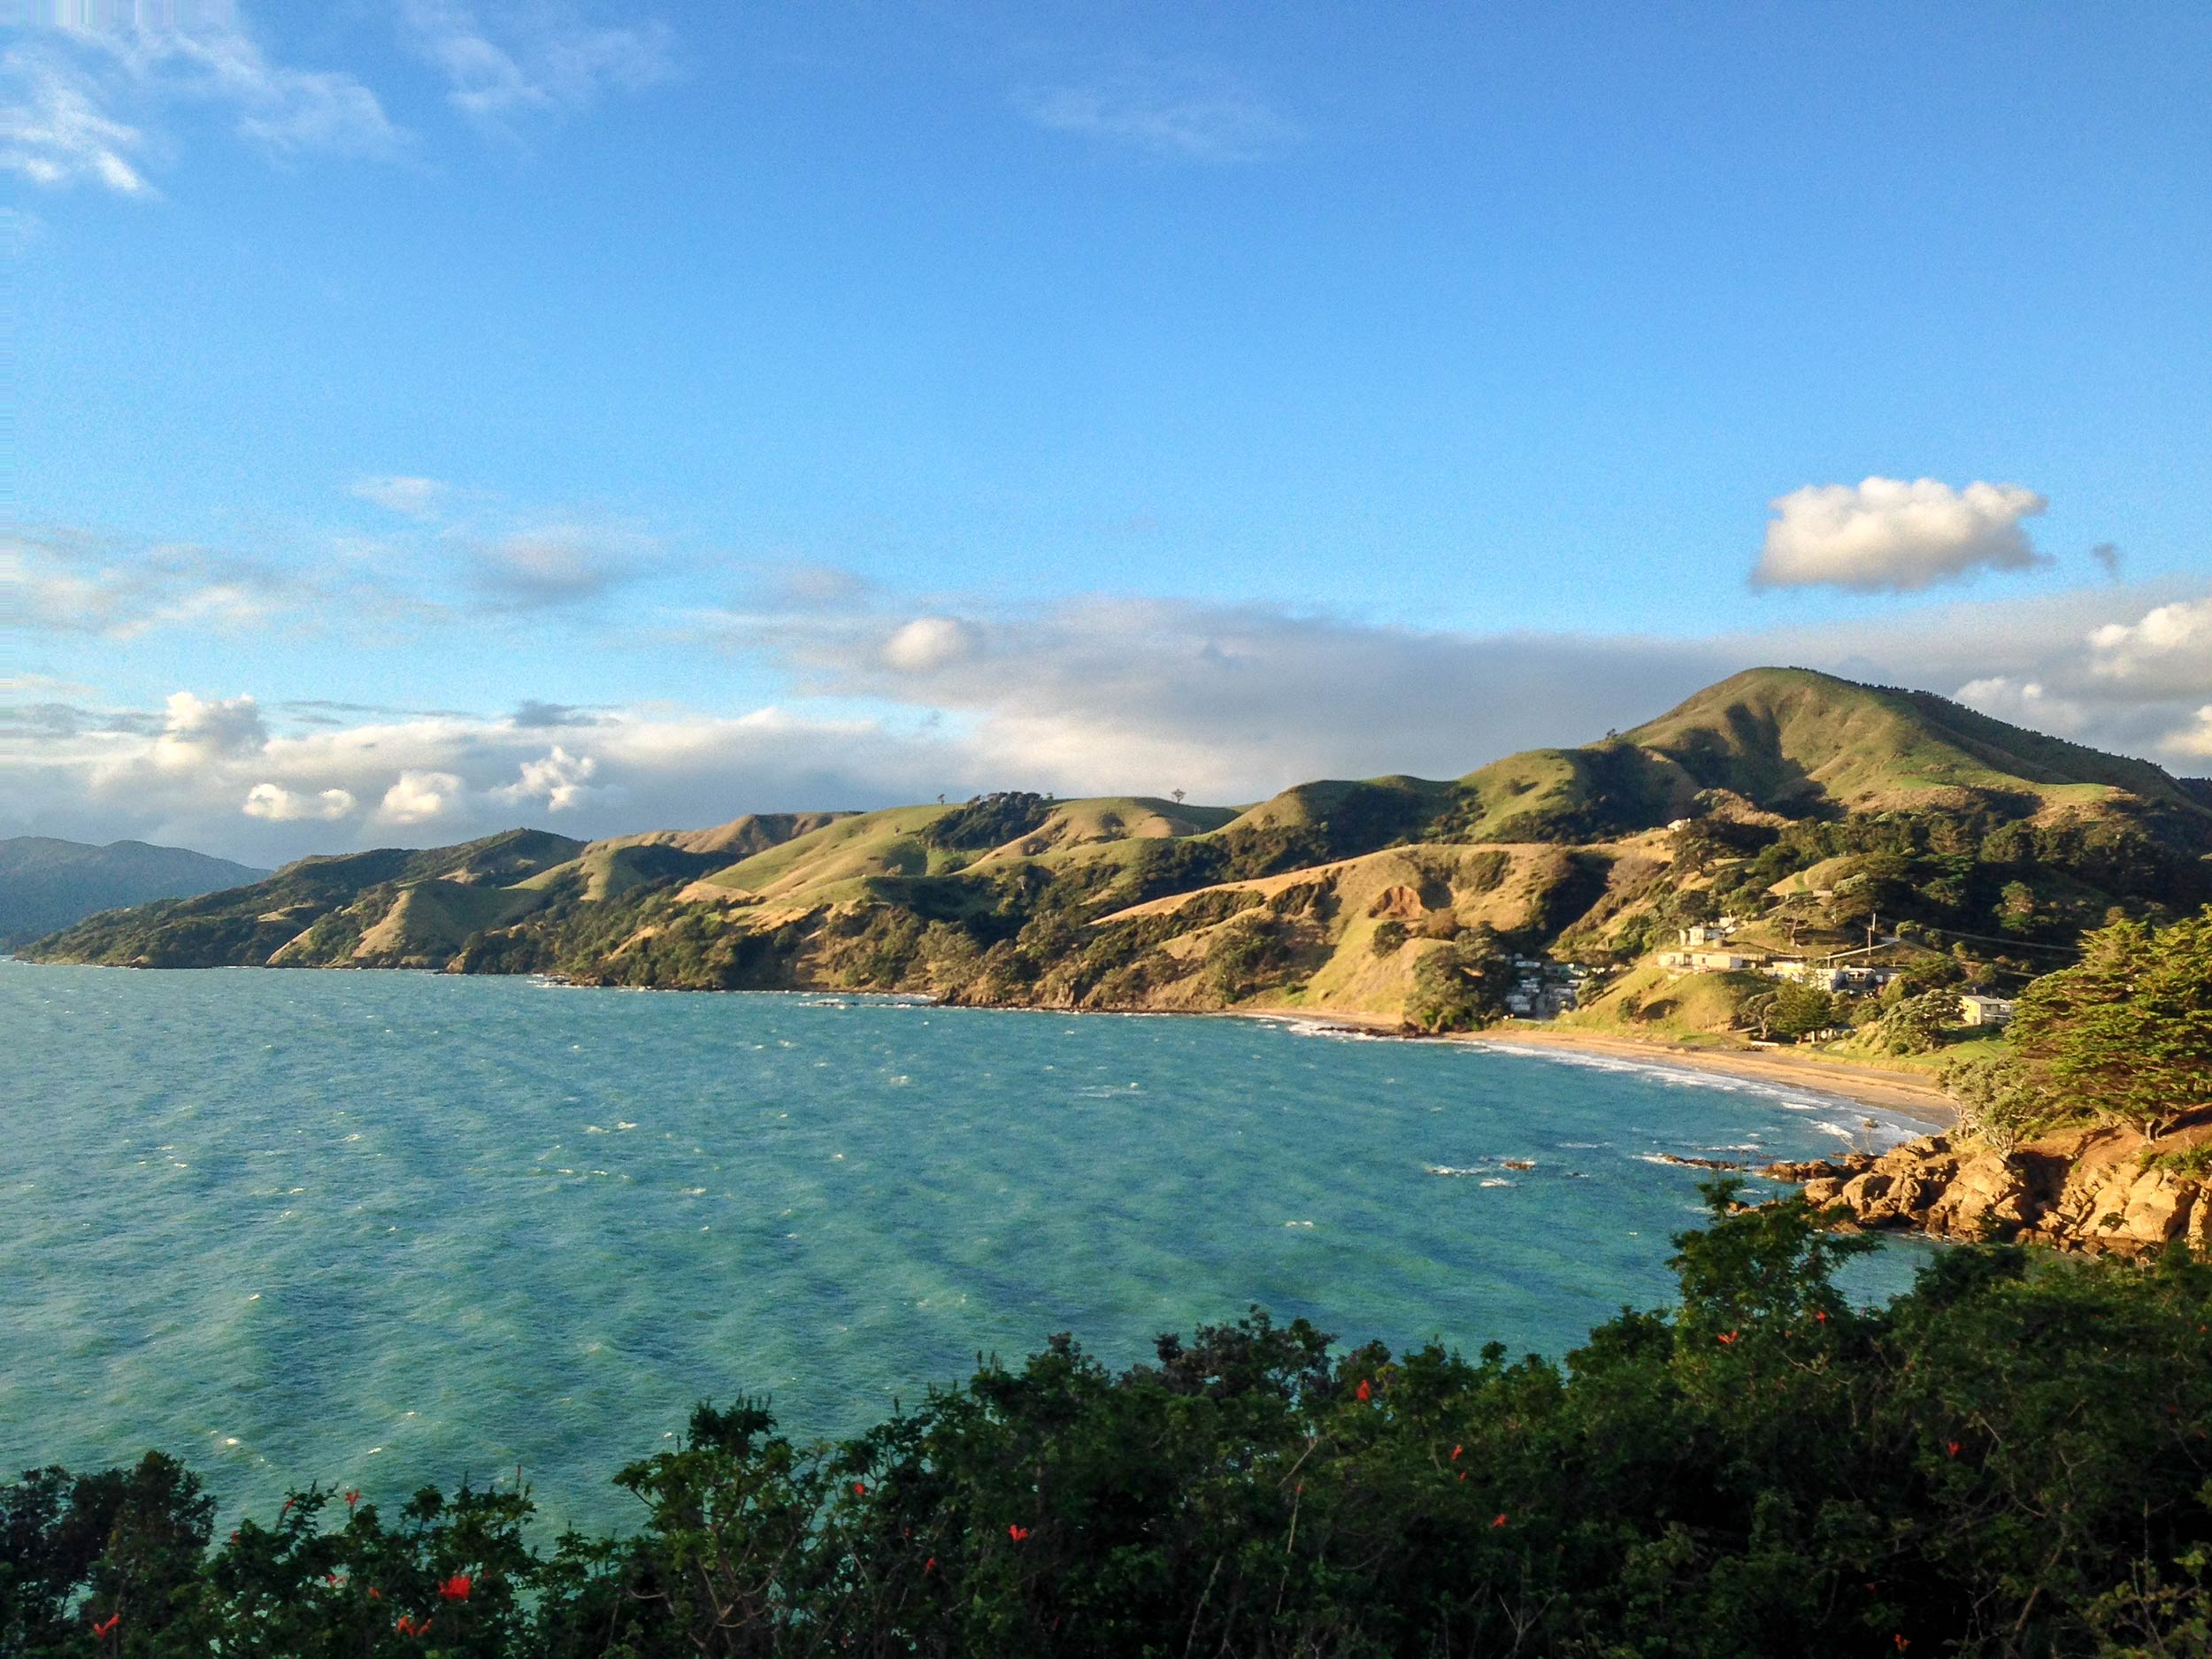 ahipara_beach_cove1.jpg